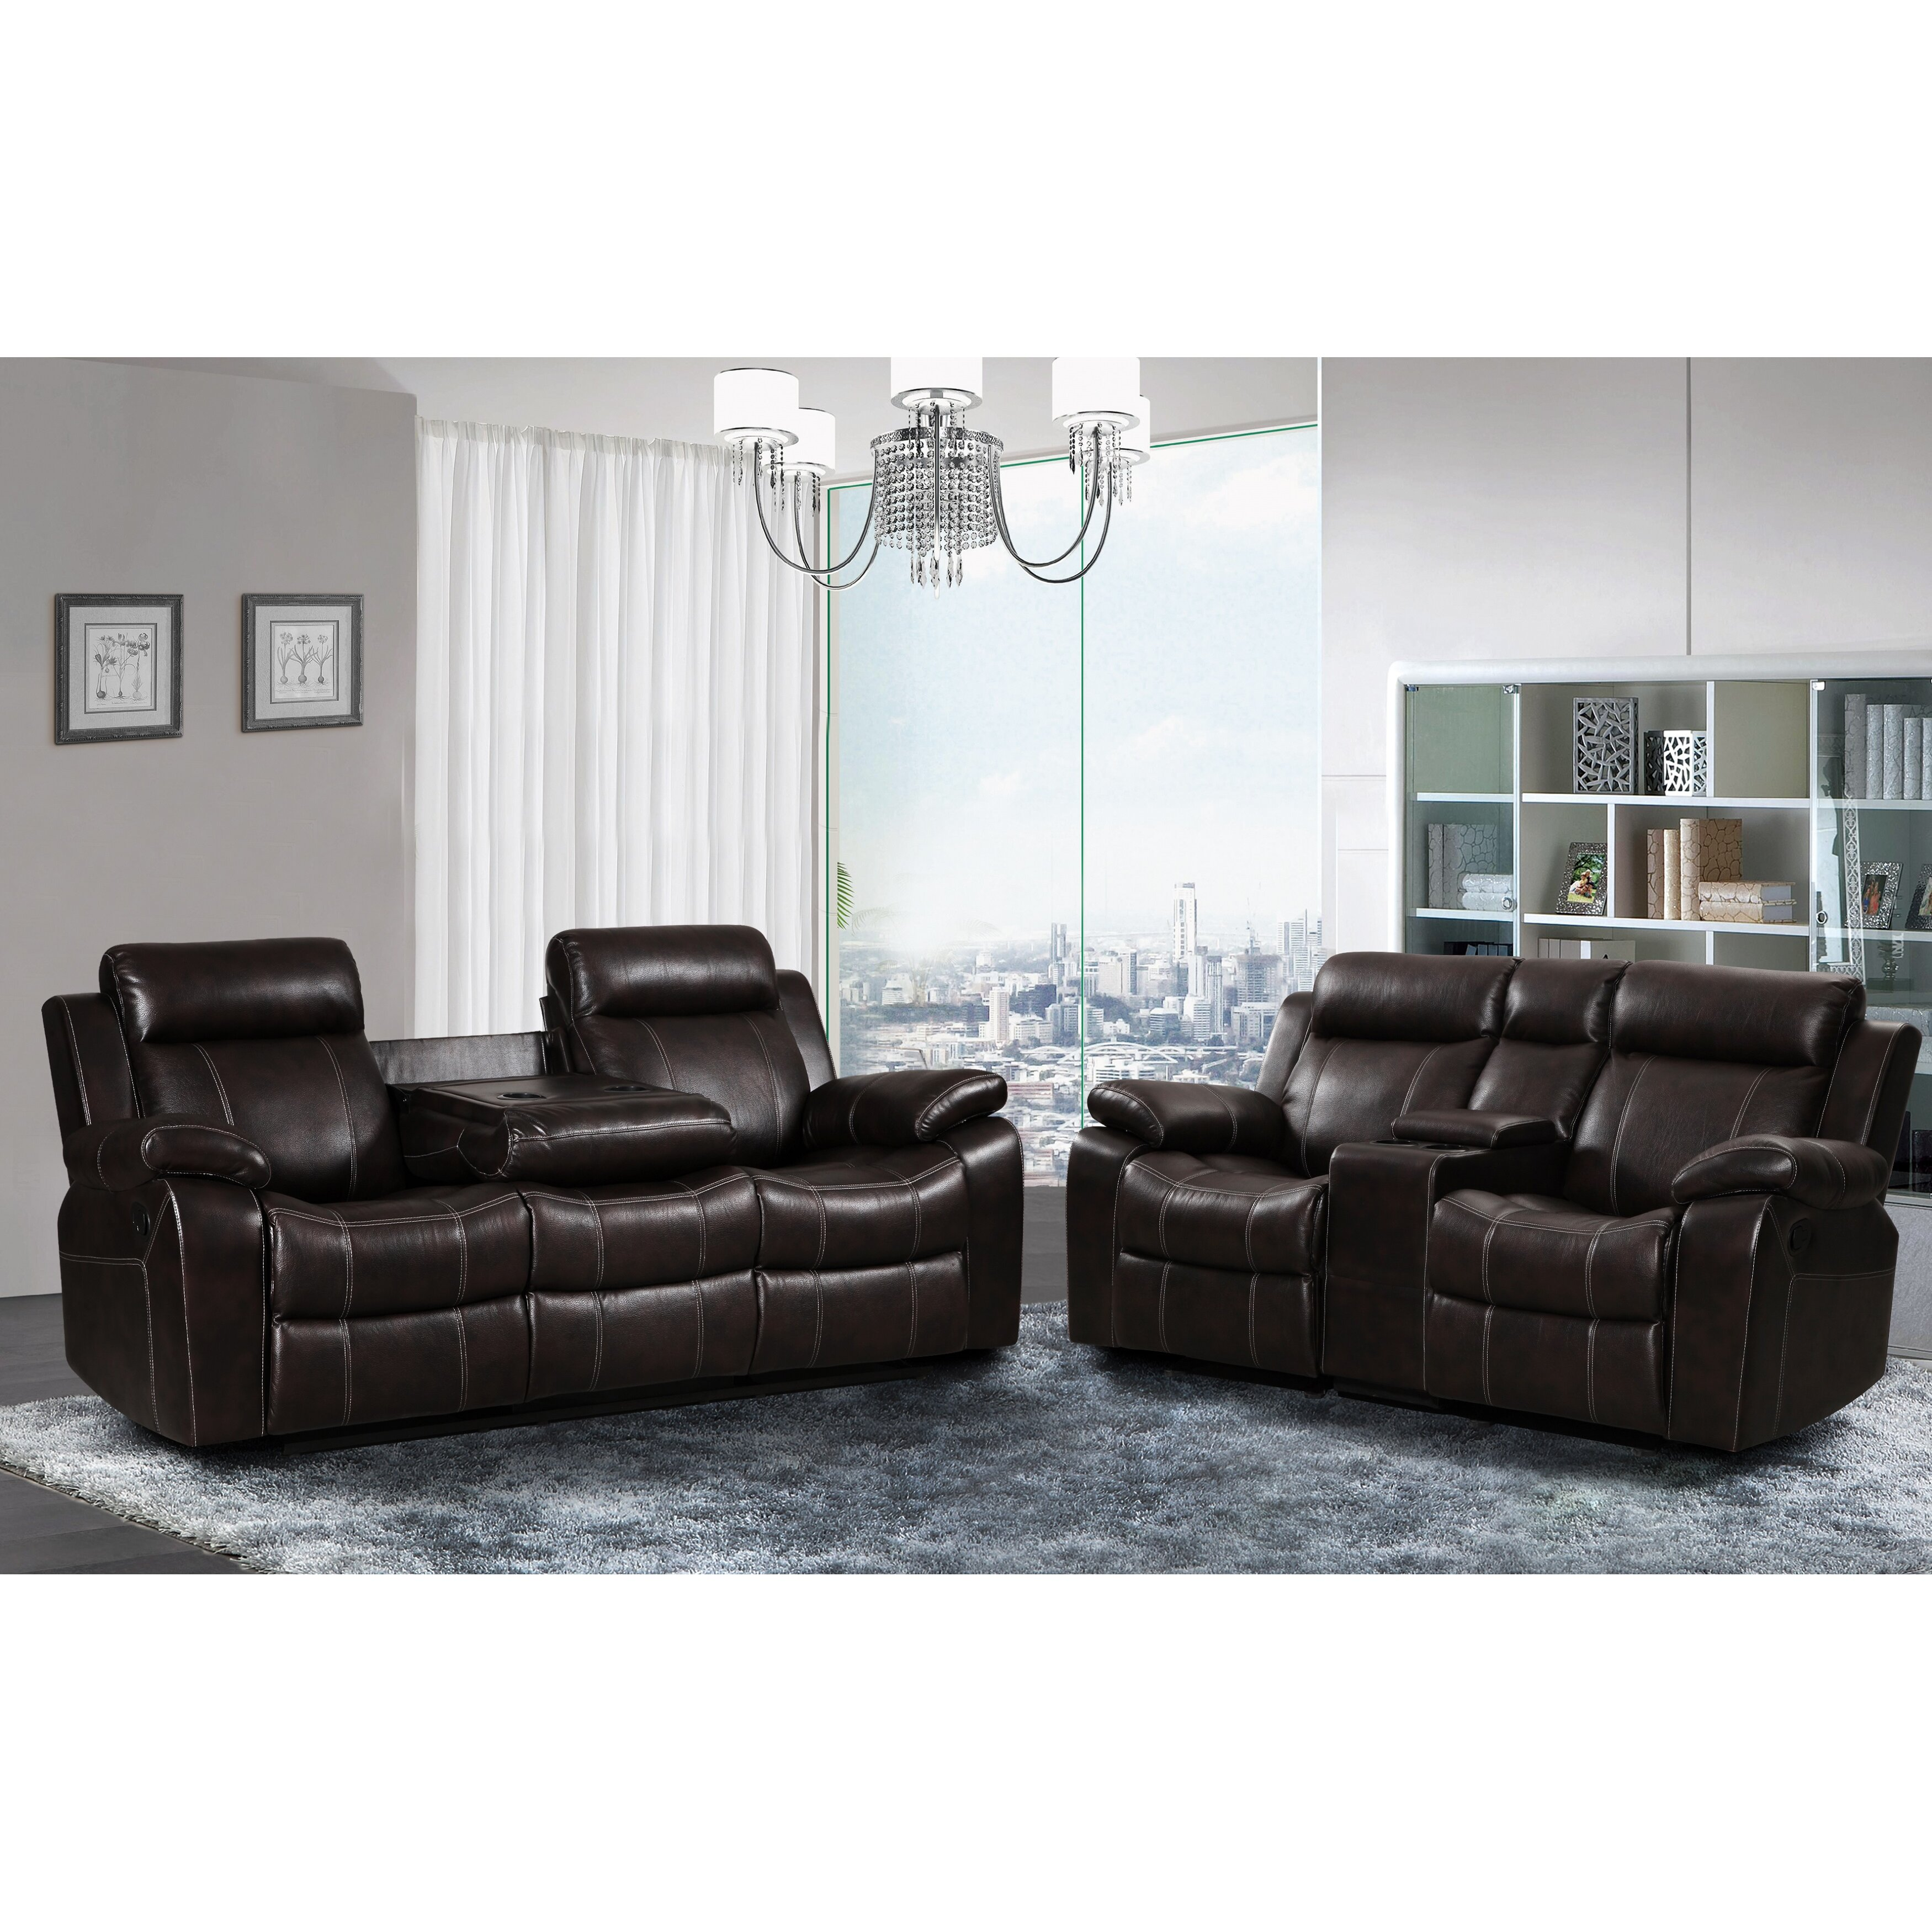 Living in style gabrielle 2 piece living room reclining for 2 piece living room furniture set